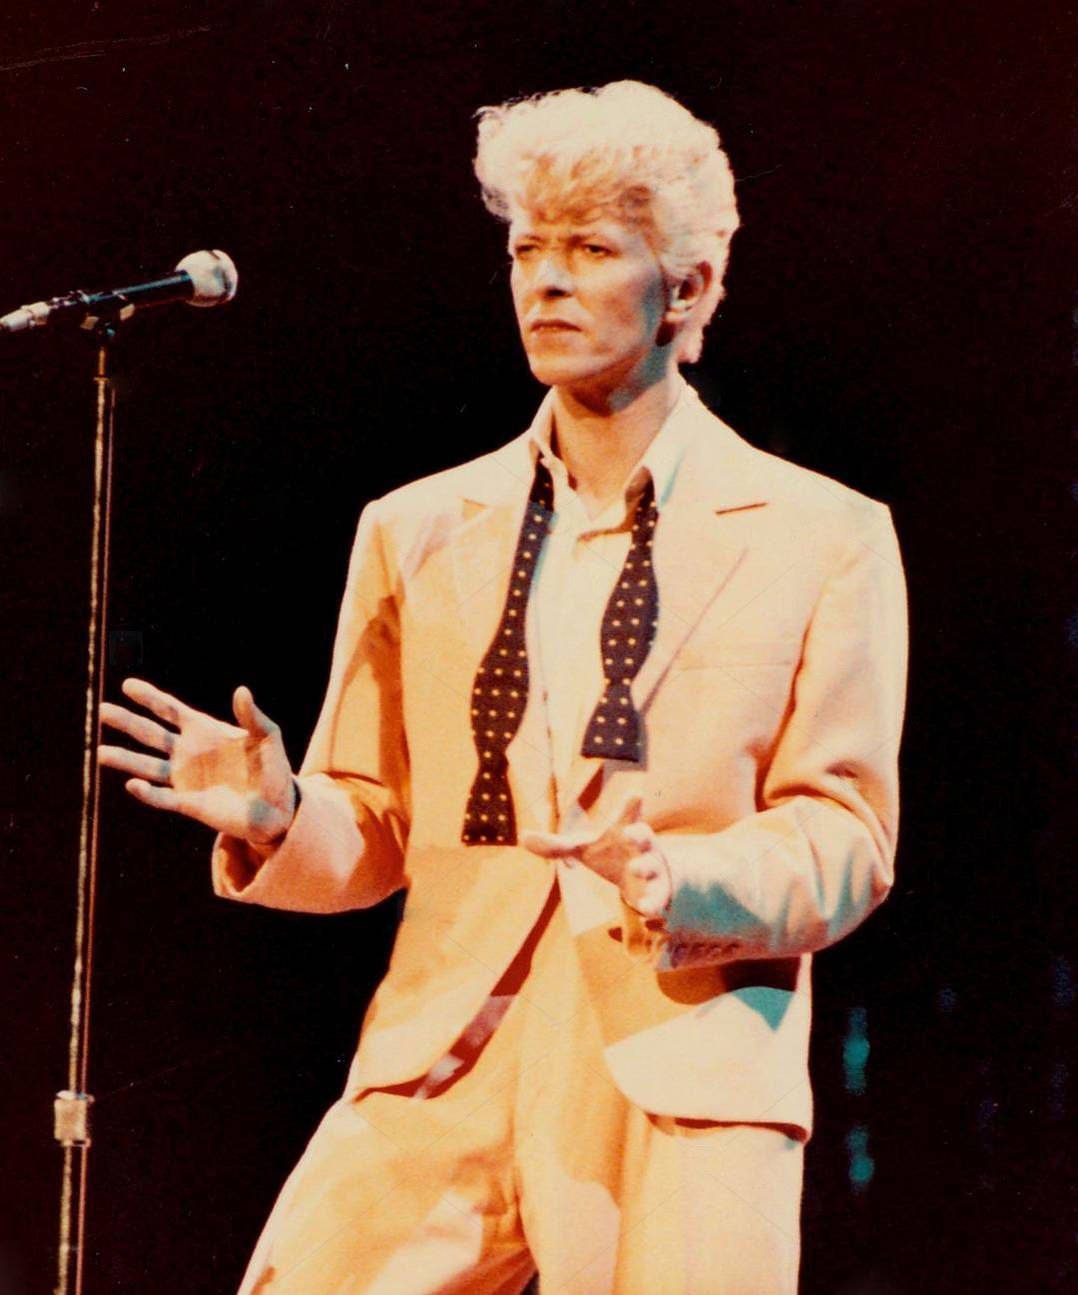 David Bowie during the Serious Moonlight tour, July 27 1983 © Michael Brito  | David bowie fashion, David bowie, Bowie